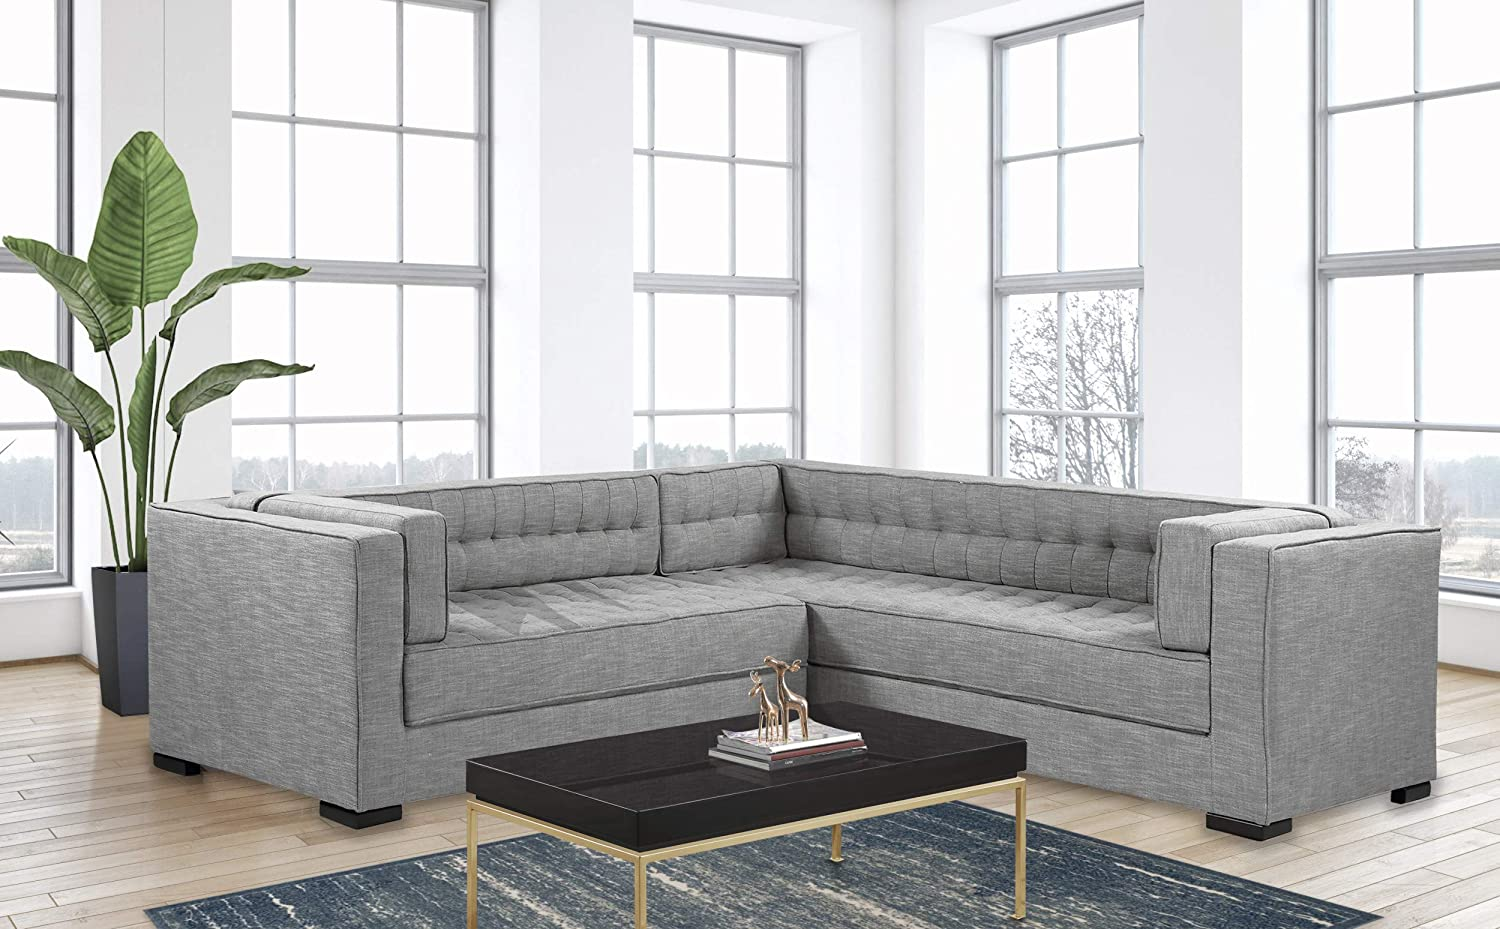 Iconic Home Lorenzo Left Facing Sectional Sofa L Shape Linen-Textured Upholstered Tufted Shelter Arm Design Espresso Finished Wood Legs Modern Transitional, Platinum